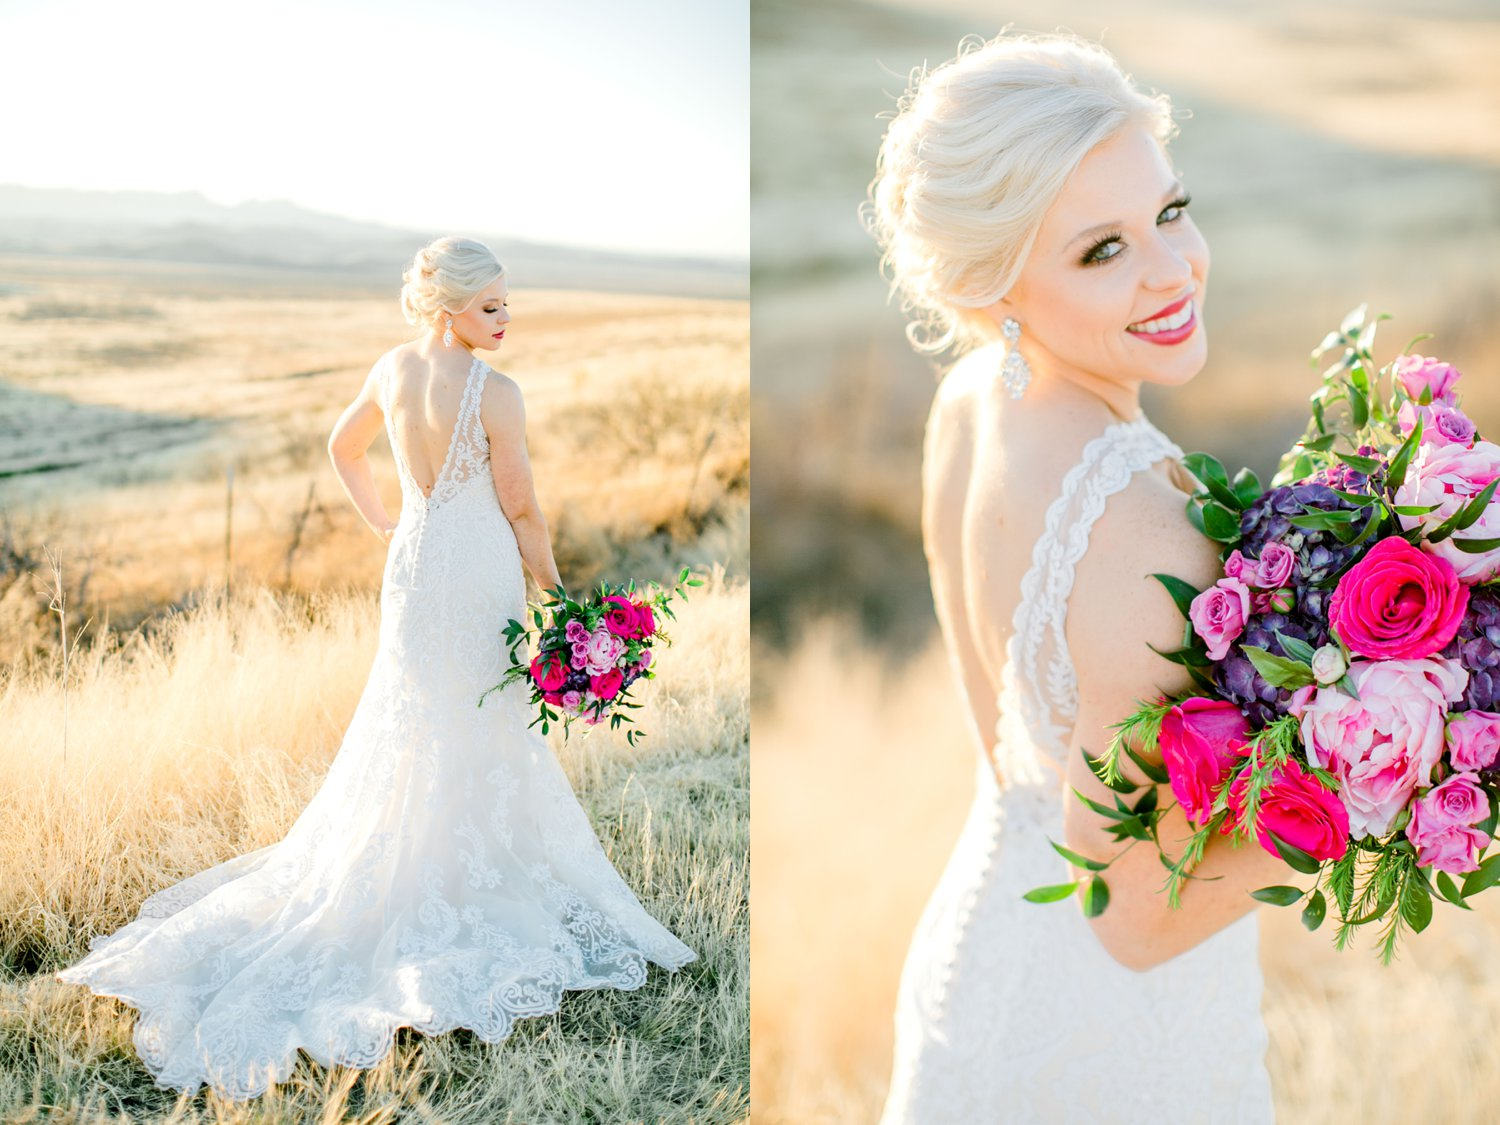 Jenna-evans-bridals-balmorhea-texas-fort-davis-wedding-photographer-lubbock-photographer__0055.jpg